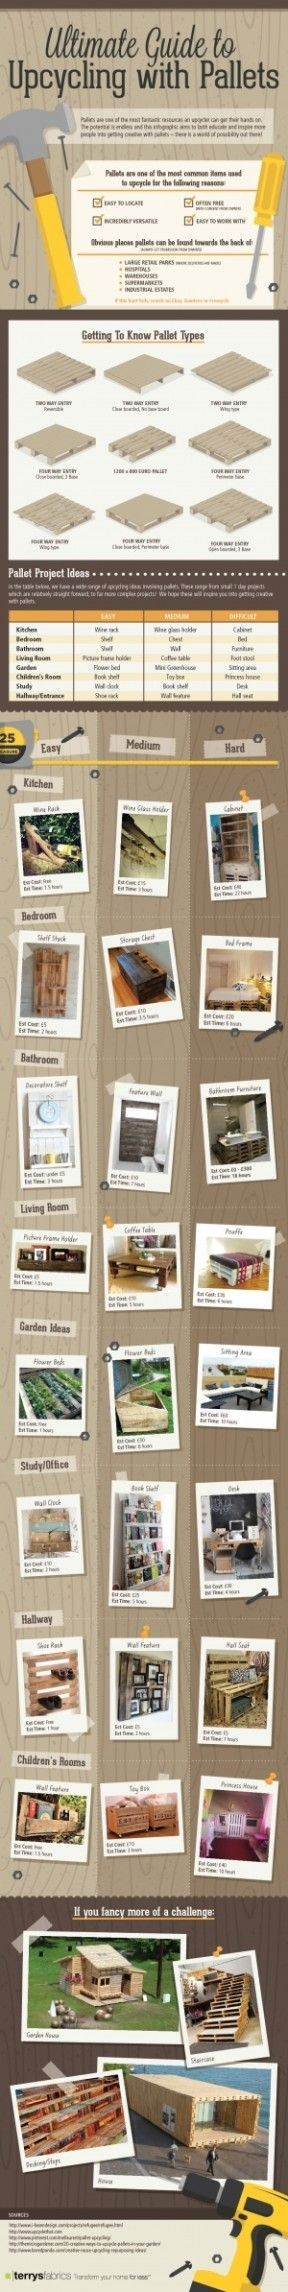 Ultimate Guide To Upcycling Pallets Pallet Ideas: upcycling for beginners